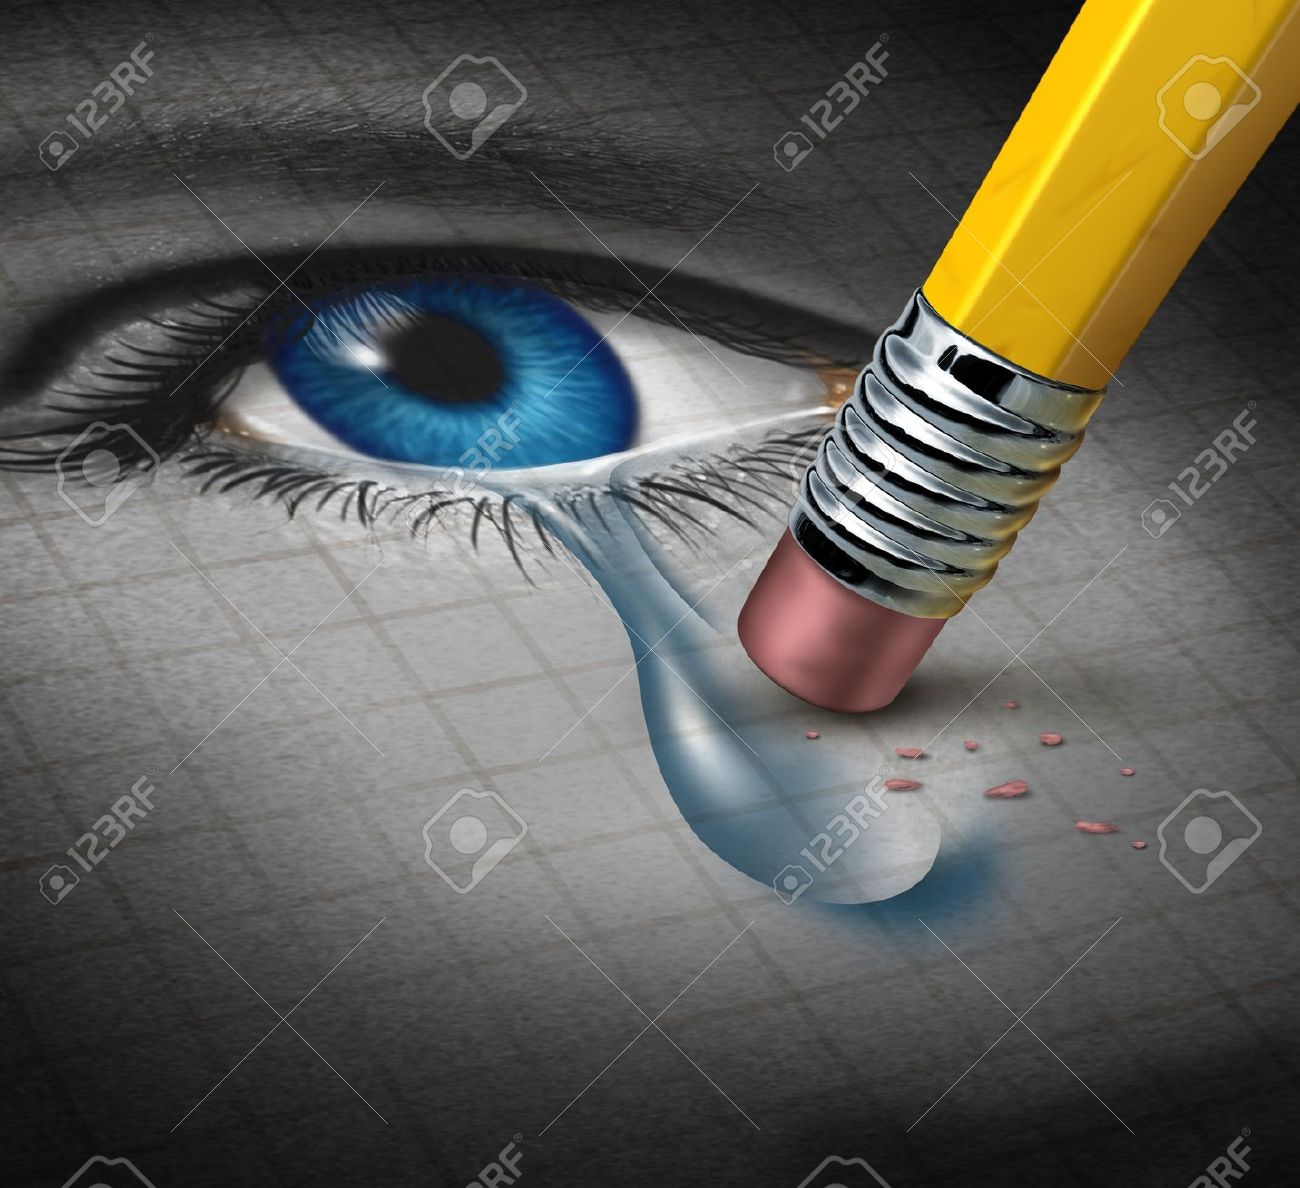 Depression Relief and conquering mental adversity with a pencil eraser removing a tear drop from a close up of a human face and eye as a concept of emotional support and therapy - 17811635